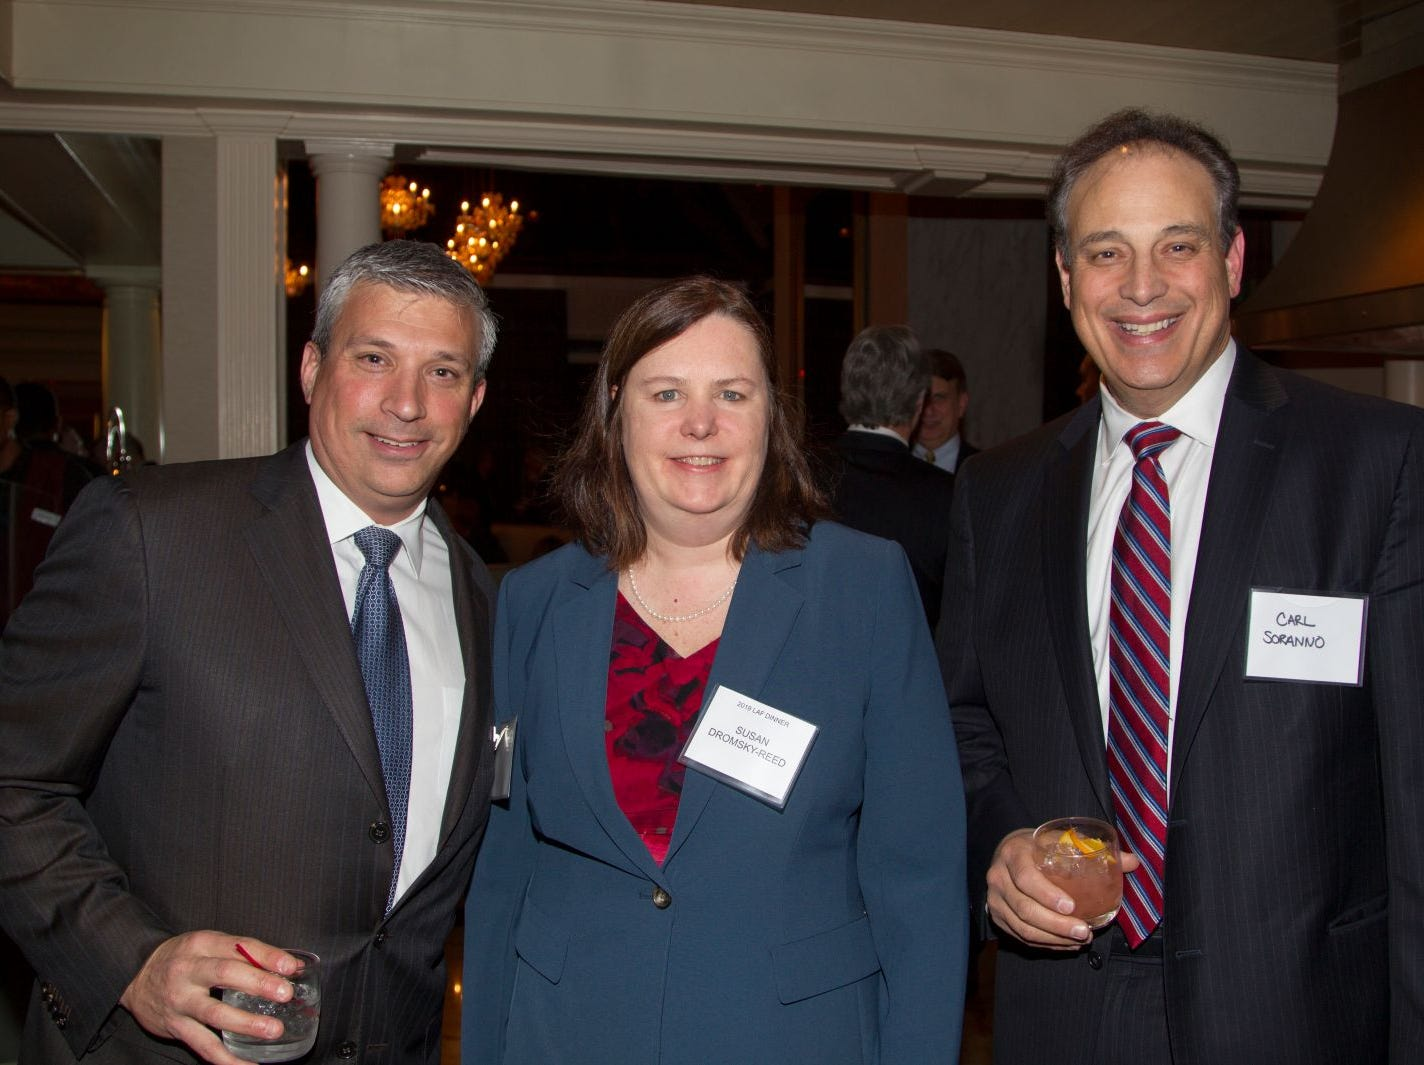 Tony Pentz, Susan Dromsky-Reed, Carl Soranno. Eva's Village hosted its second annual Lawyers, Accountants and Financial Professionals Benefit Dinner at Westmount Country Club in Woodland Park. 02/21/2019